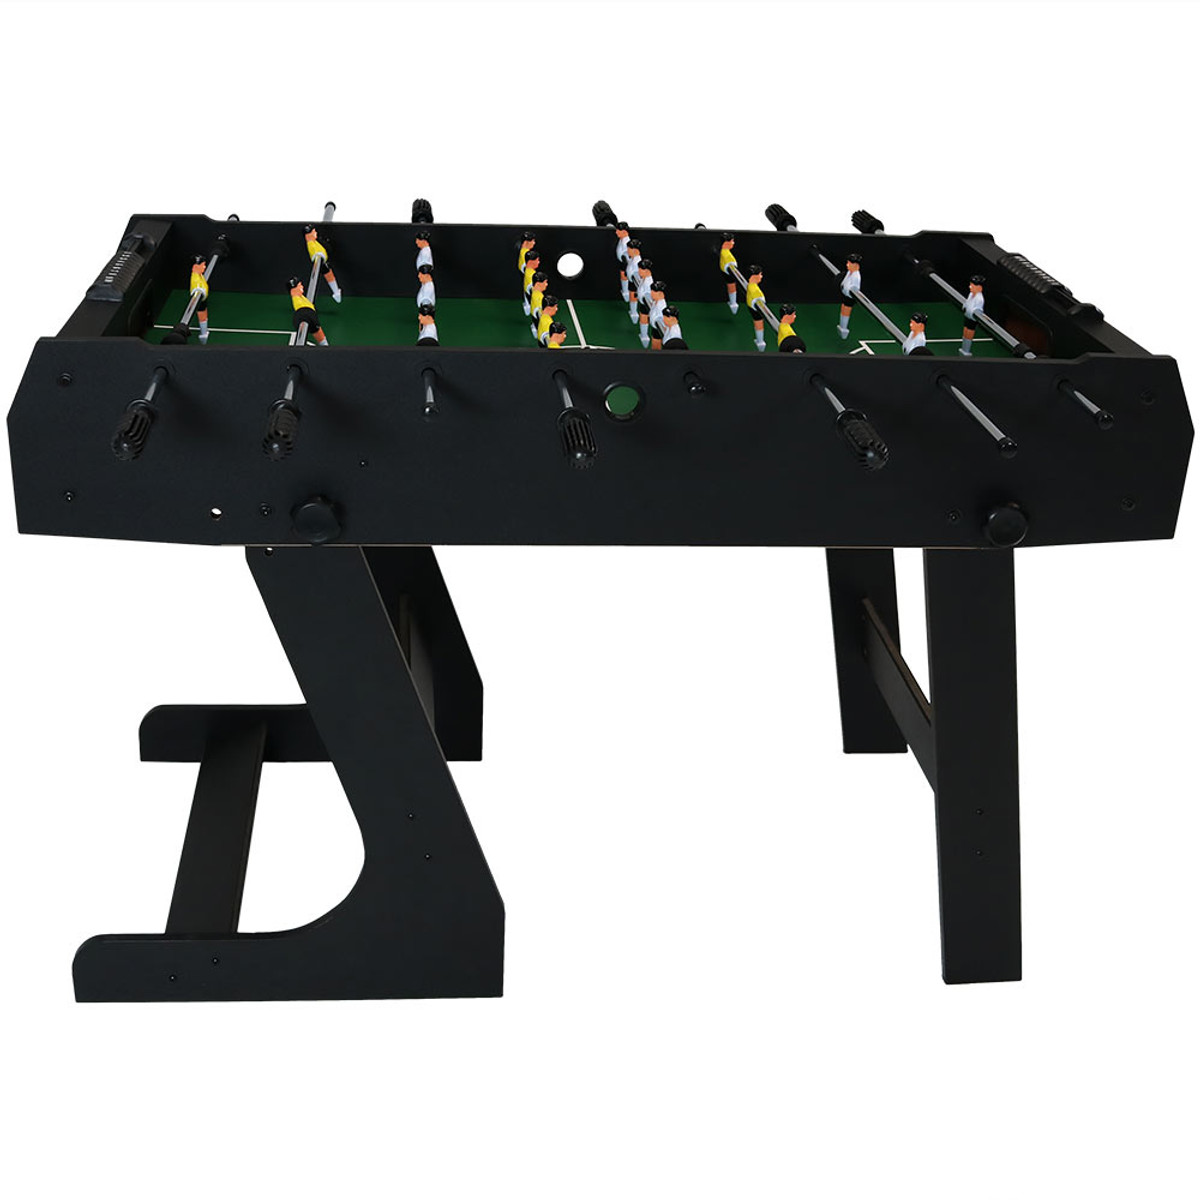 Sunnydaze 48 Inch Folding Foosball Game Table